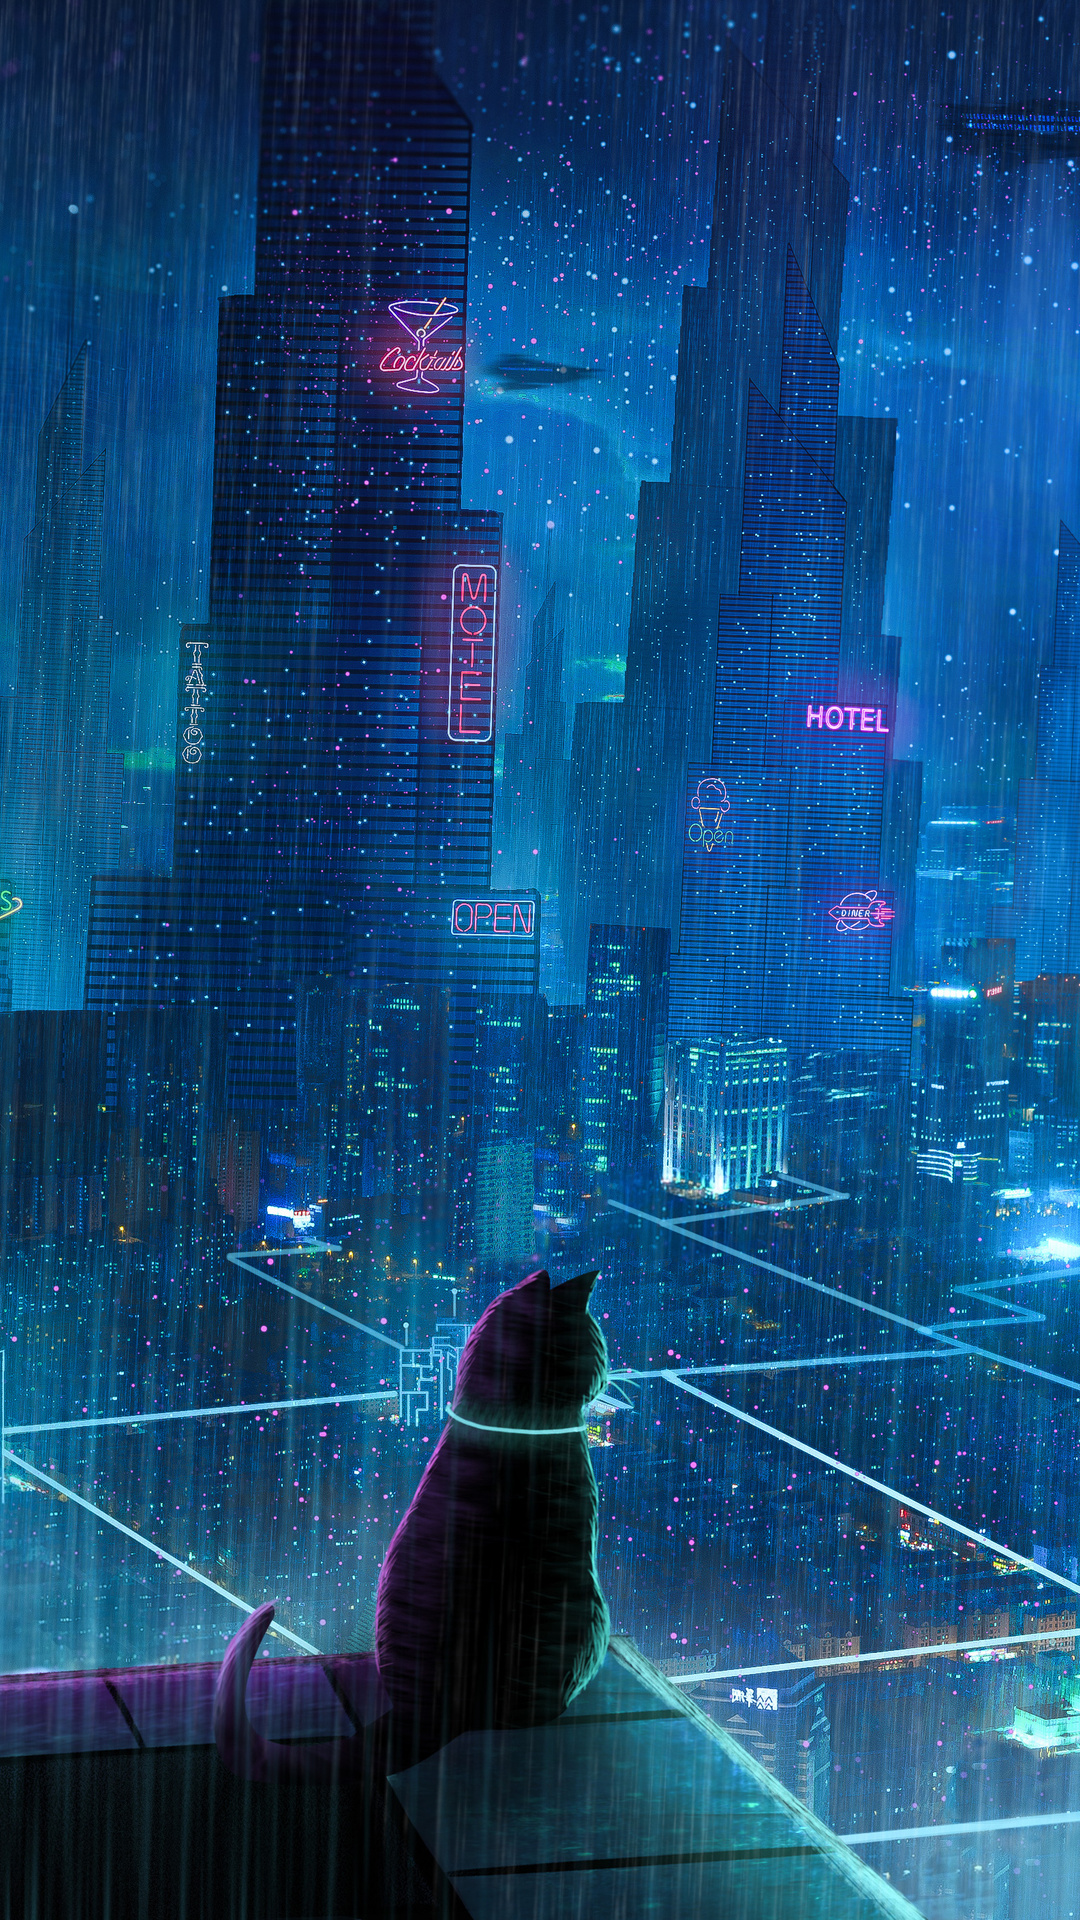 1080x1920 Cat Rain Dream Cyberpunk City 4k Iphone 7 6s 6 Plus